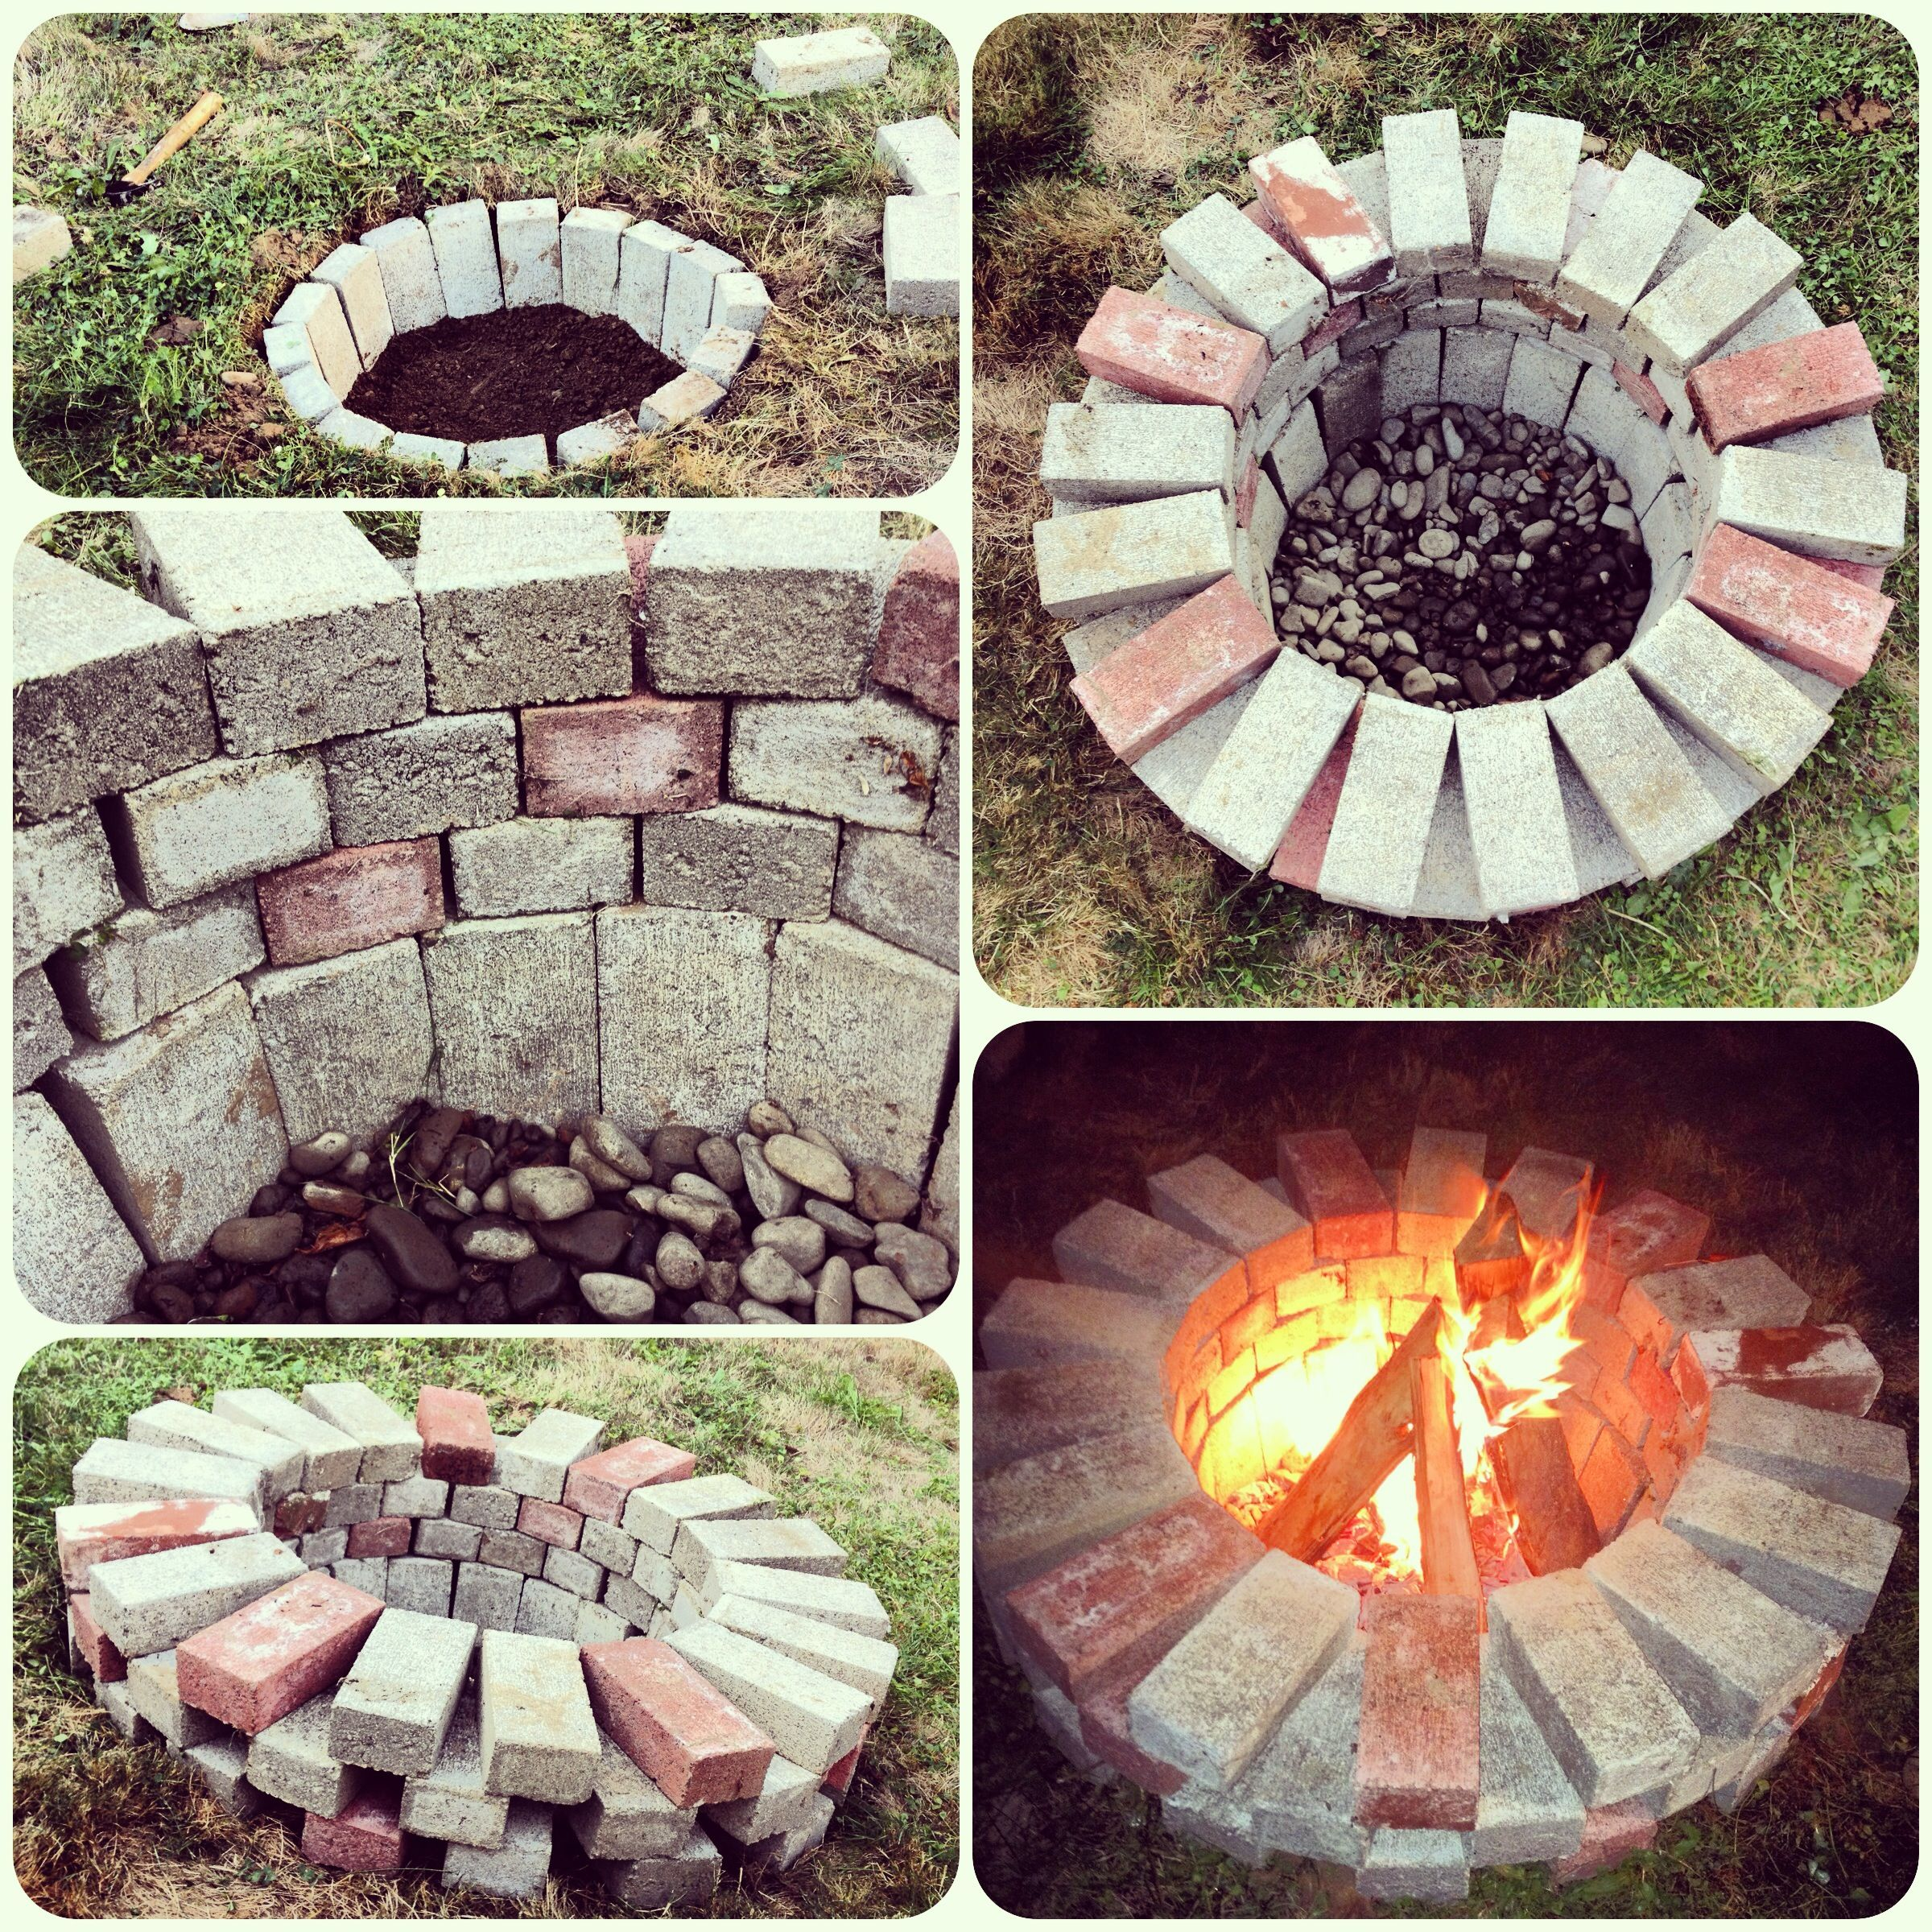 Pin By Carley Brin On Outside Garden Outdoor Fire Pit Designs Fire Pit Designs Brick Fire Pit